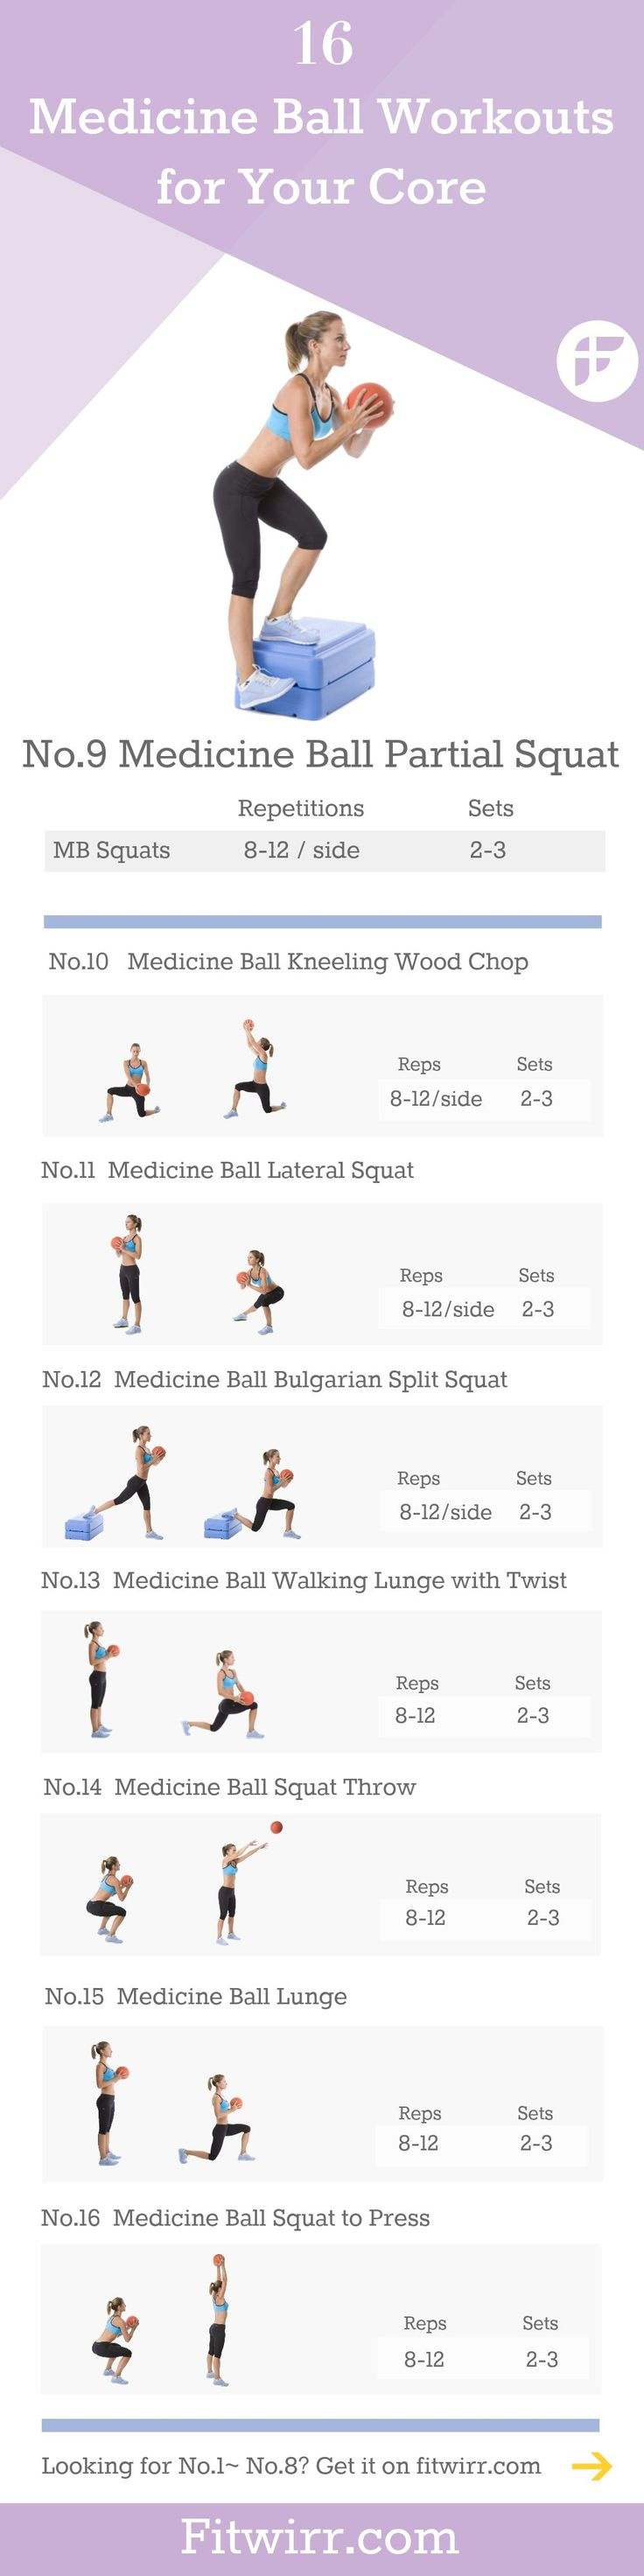 16 Medicine ball workouts to strengthen your core. #coreexercises #squats